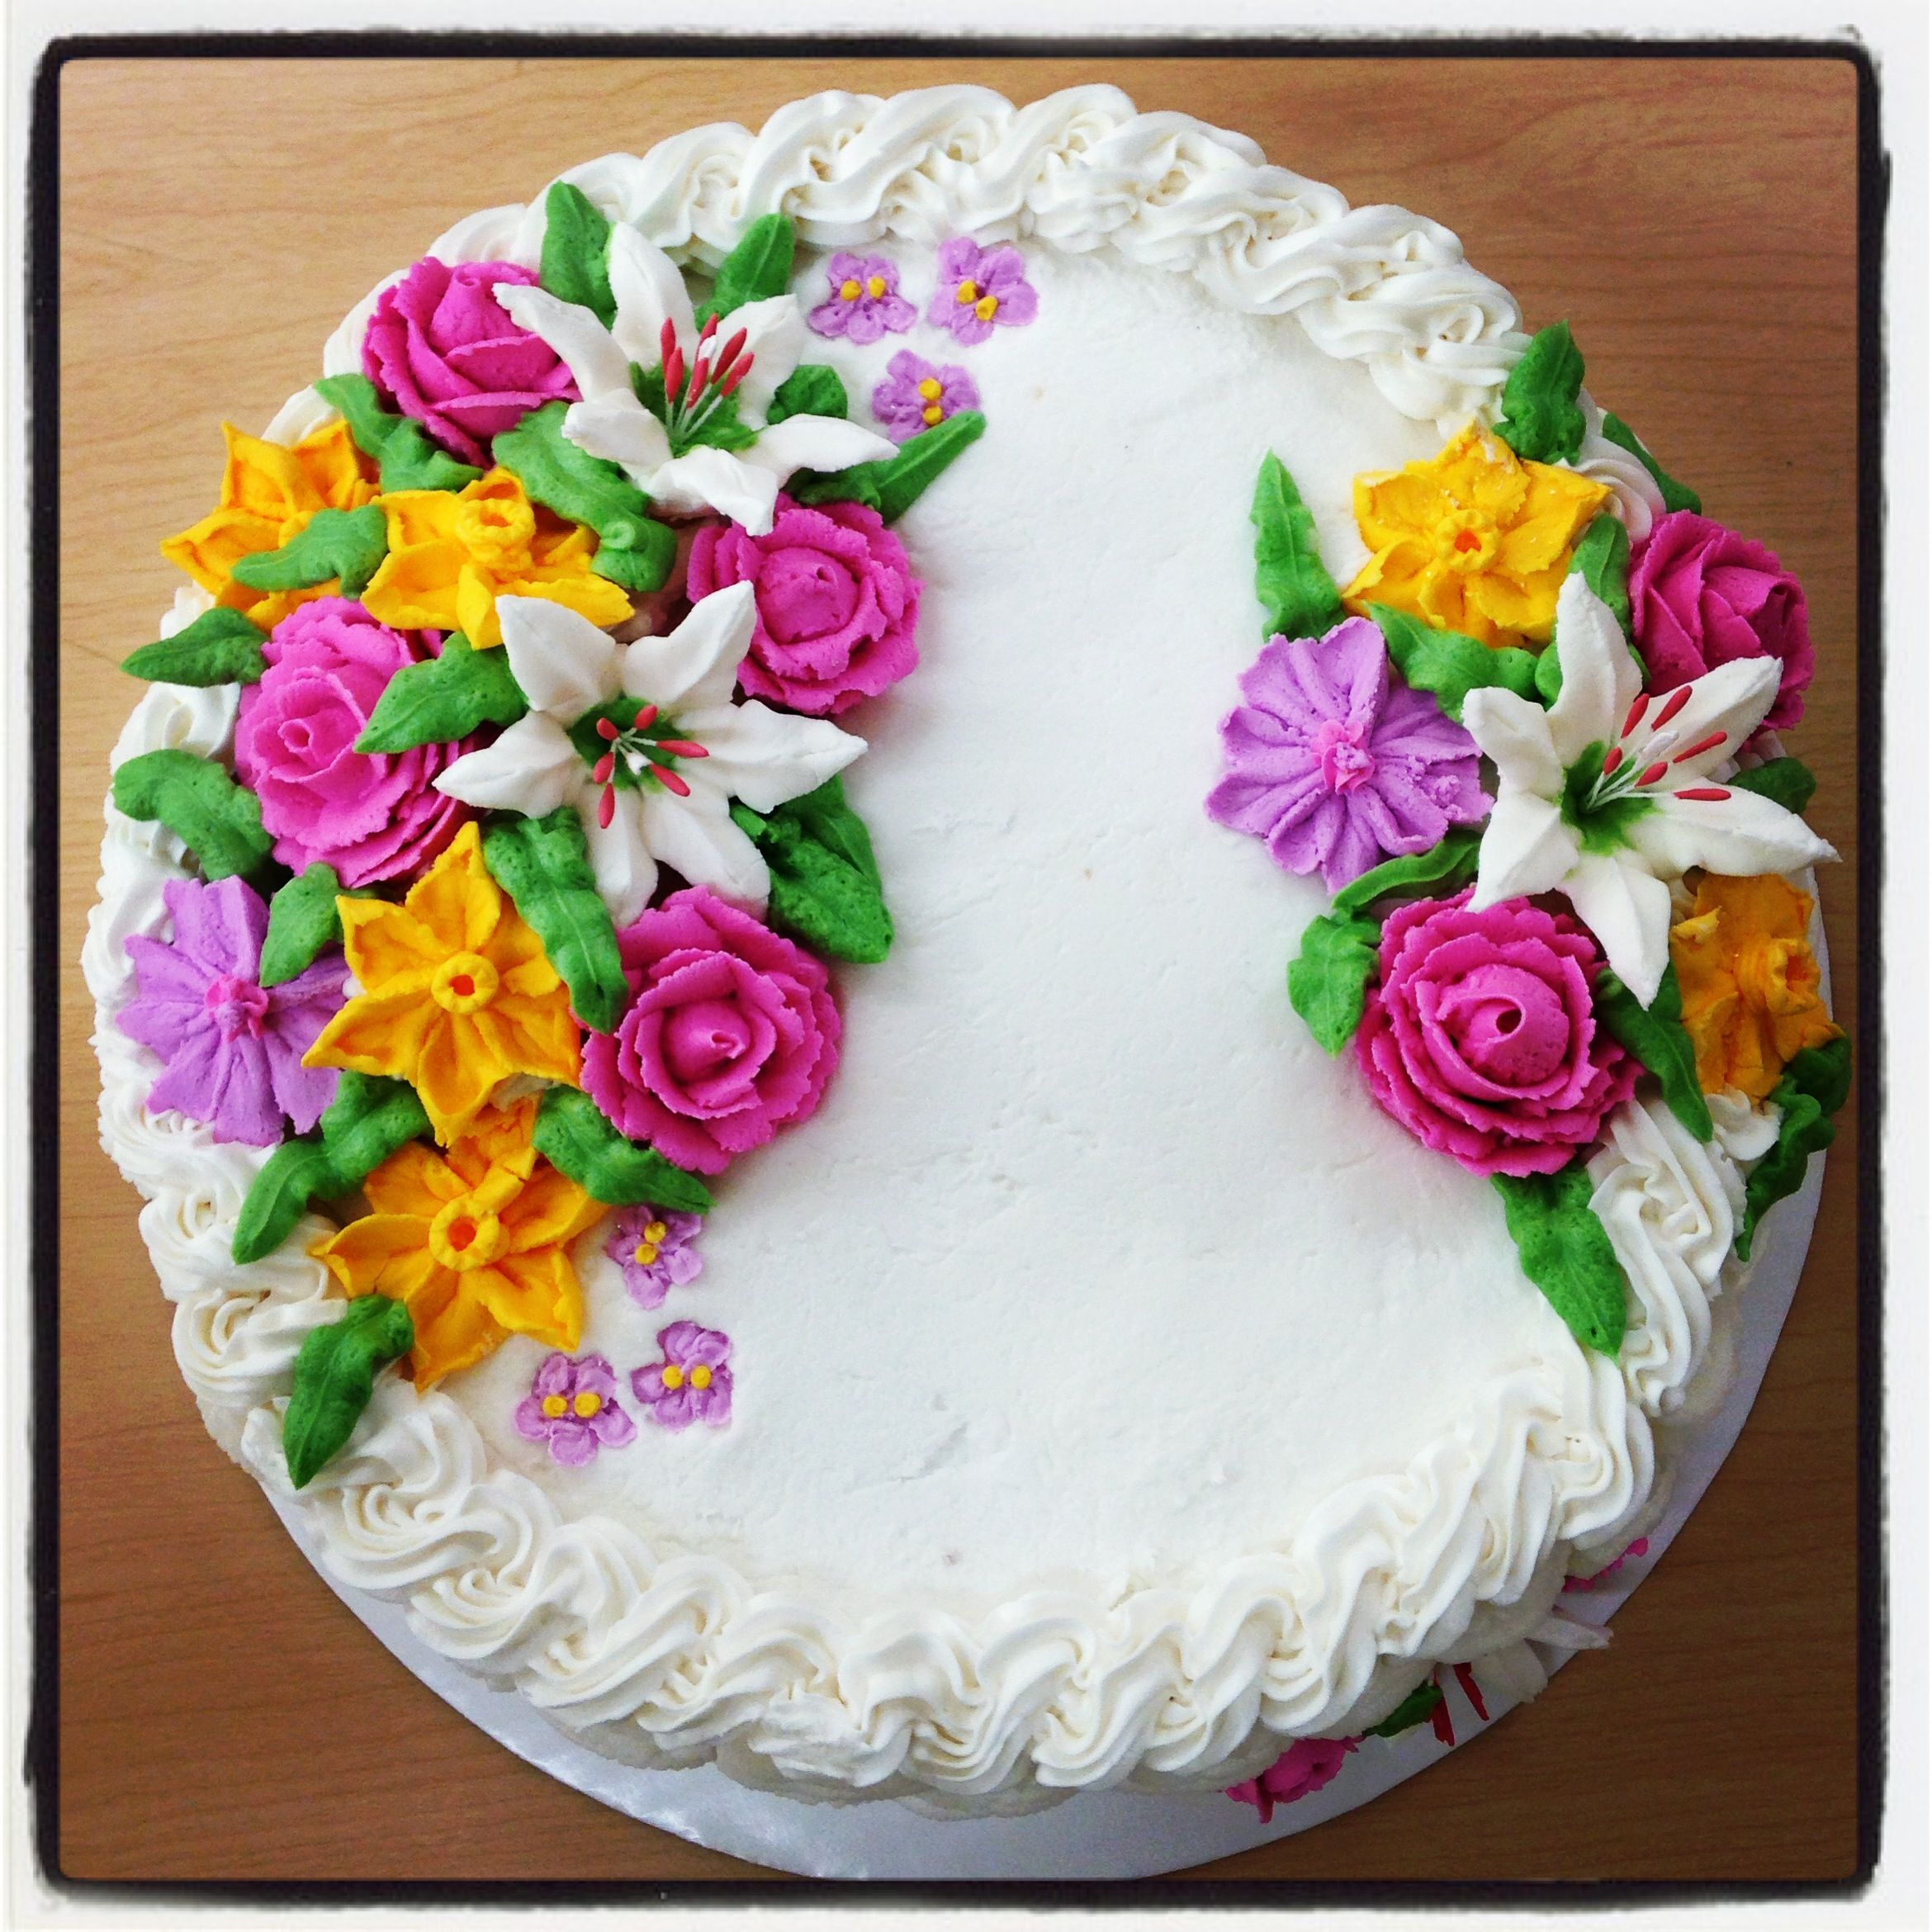 Cake Decorating Icing Roses : Buttercream basket weave cake with royal icing flowers ...